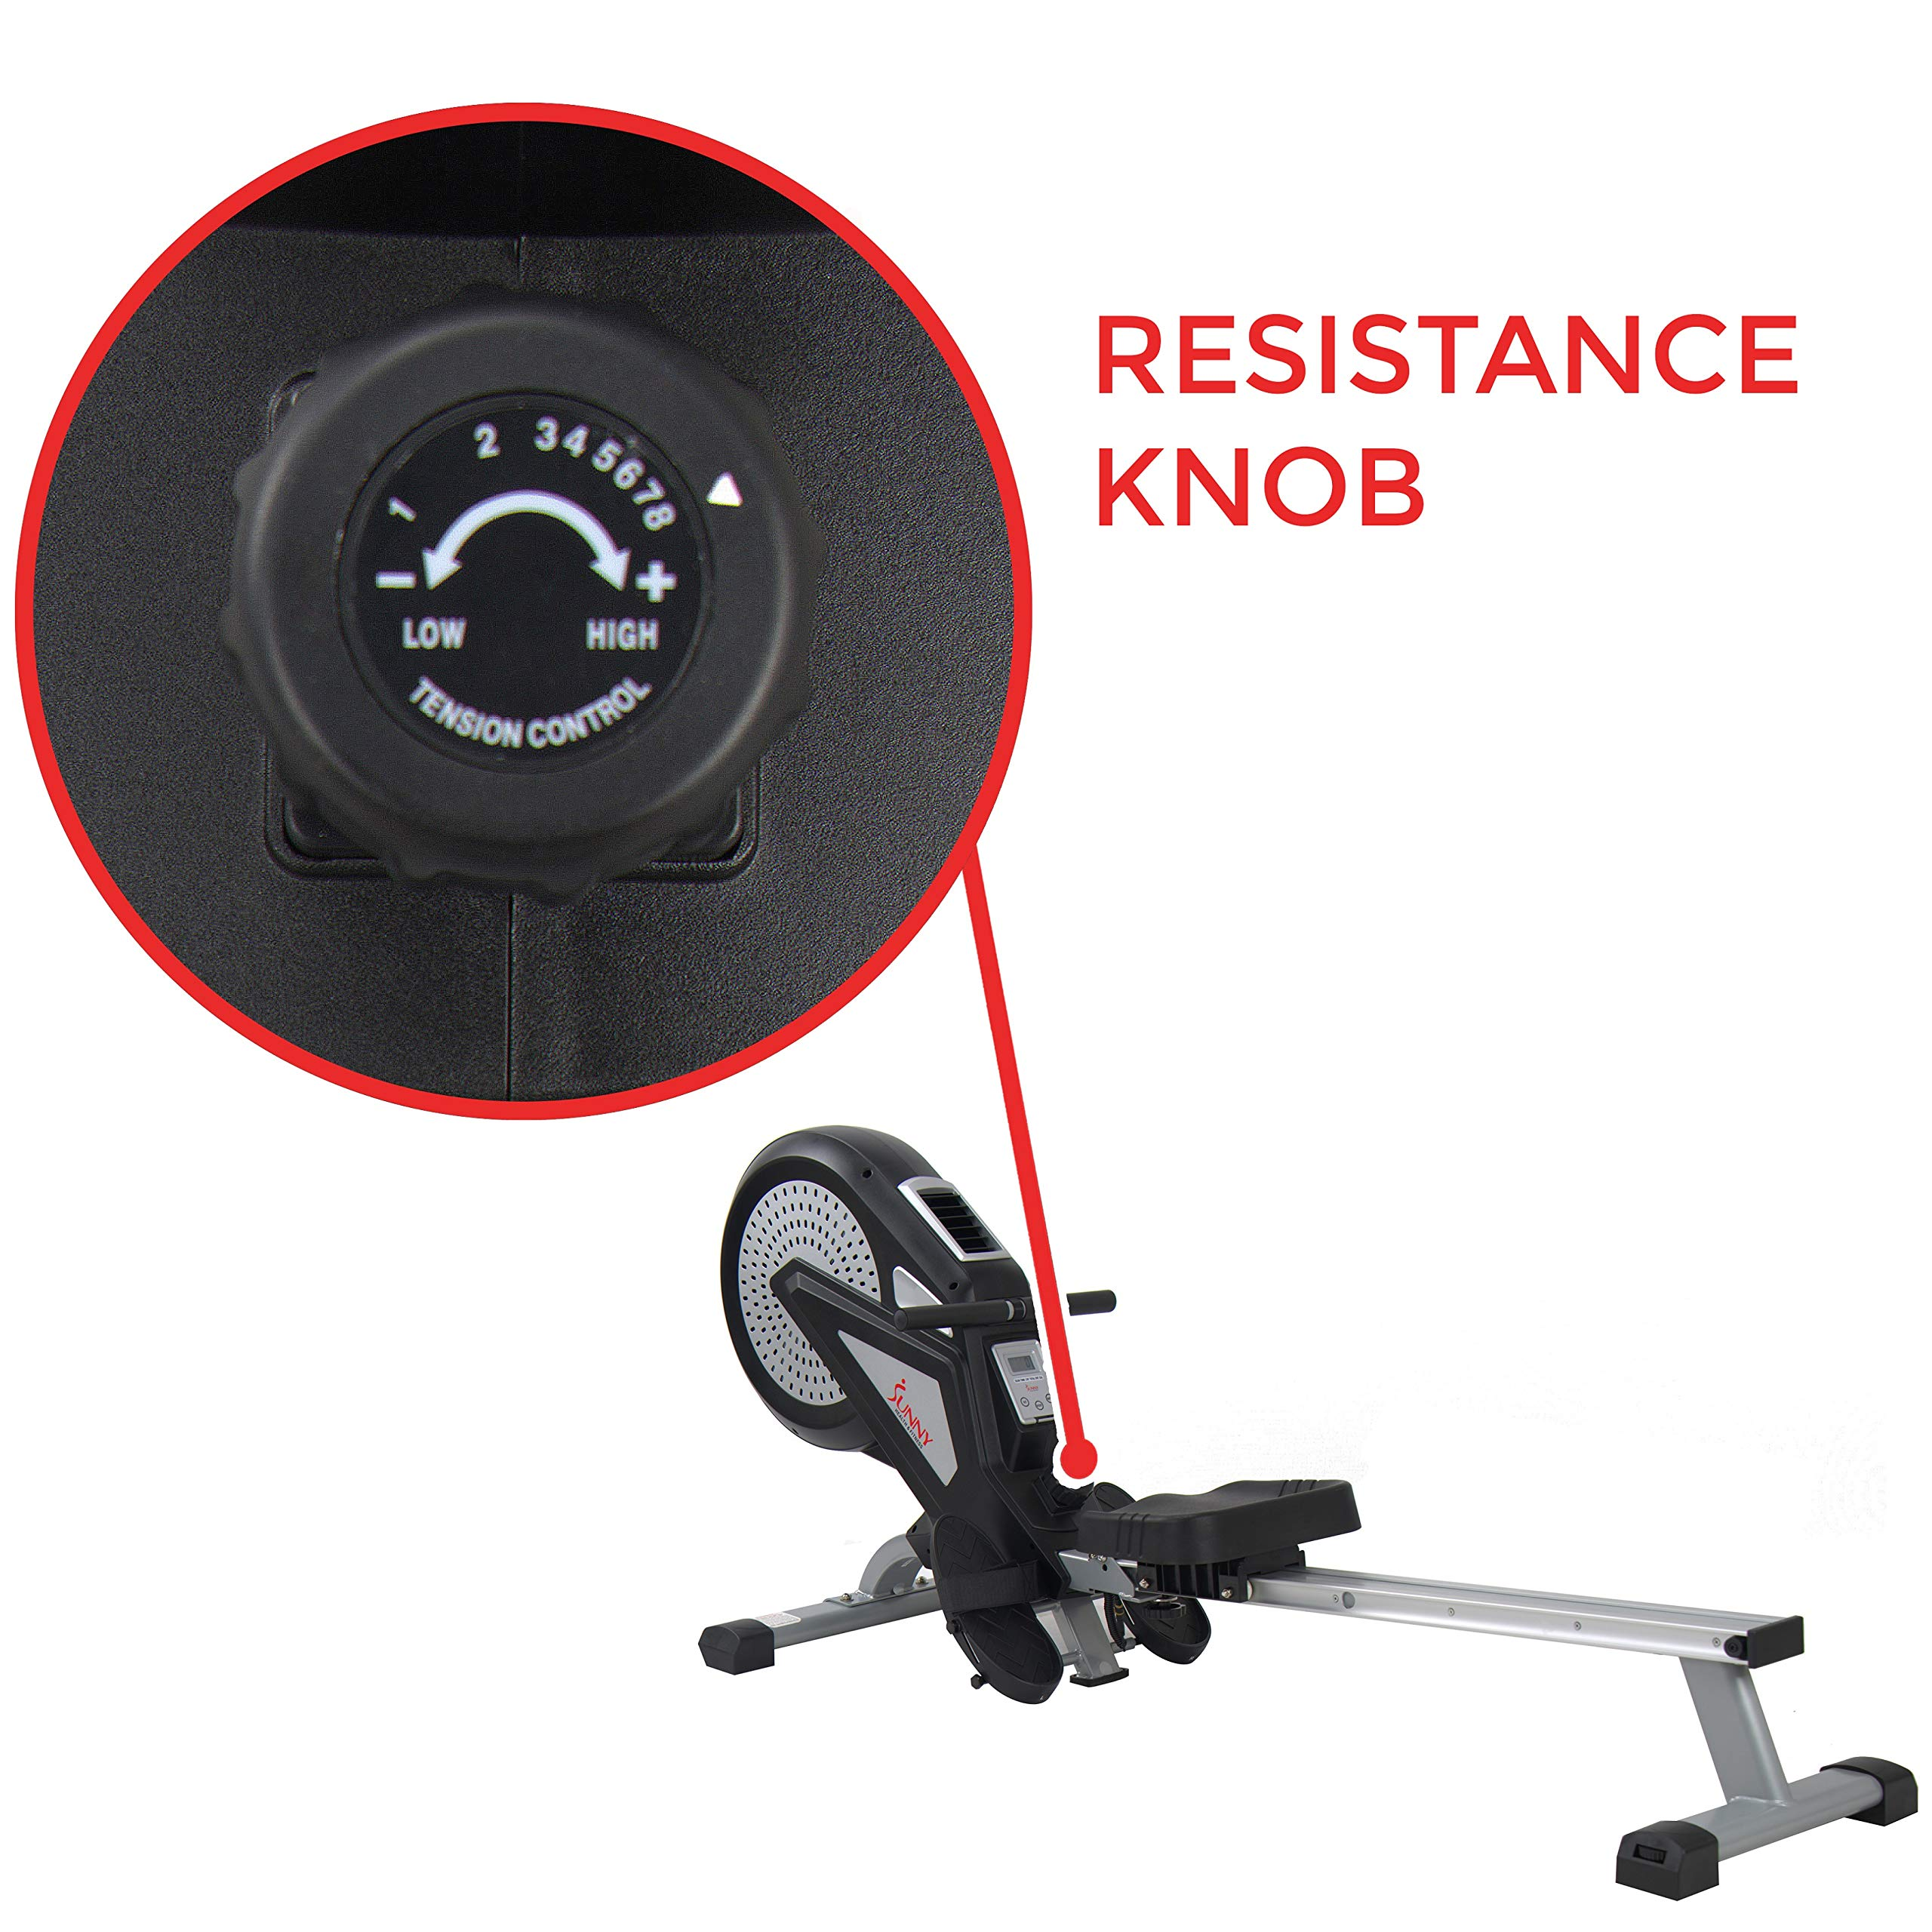 Sunny Health & Fitness Air Rower Rowing Machine w/ LCD Monitor, Dual Belt and Air Resistance SF-RW5623 by Sunny Health & Fitness (Image #6)